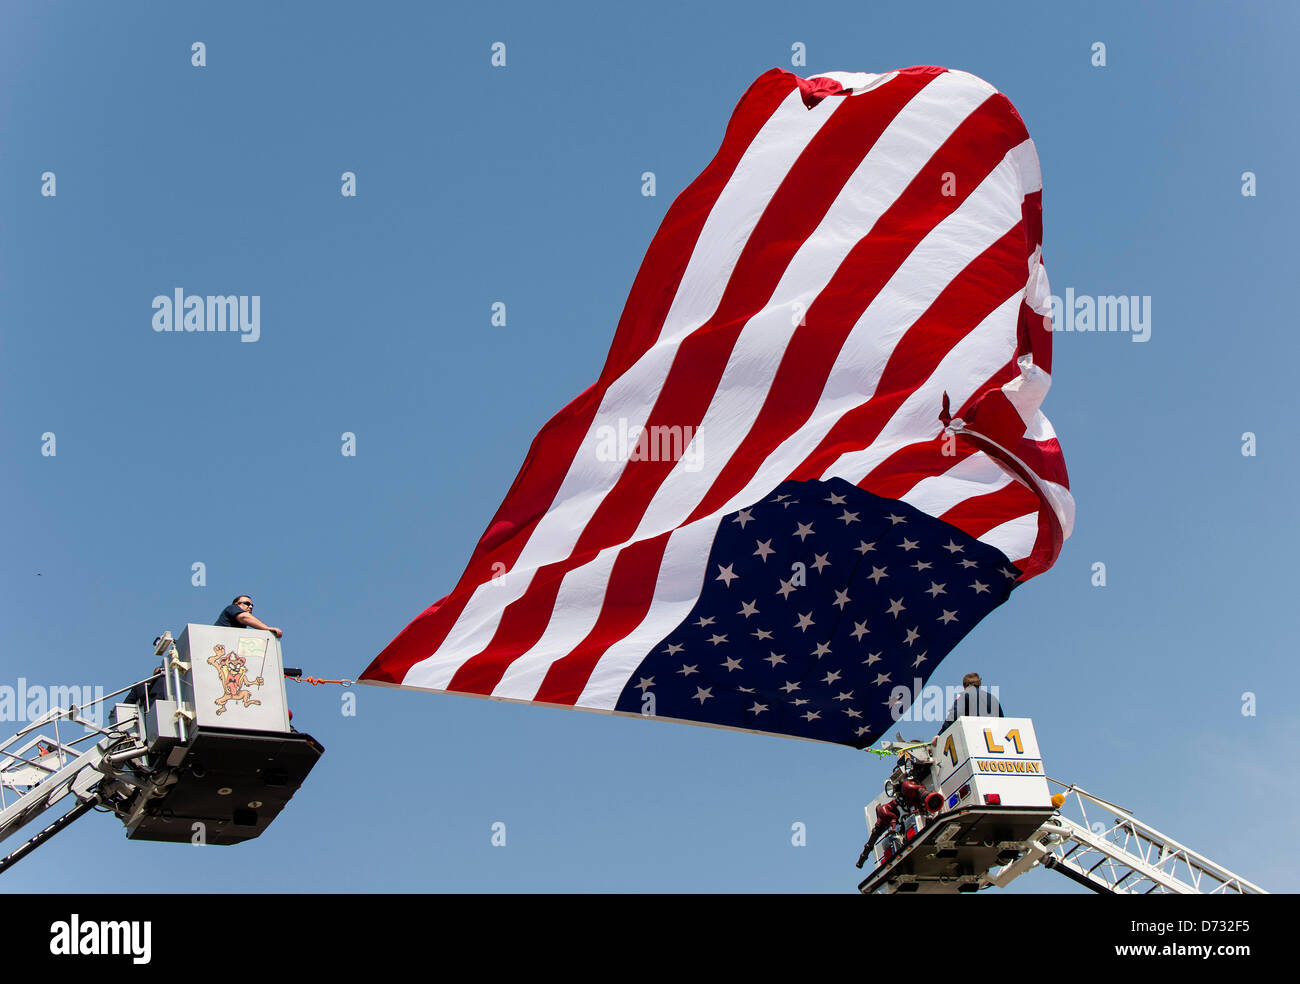 April 27, 2013 - West, Texas, U.S -  Firefighters drape a large American flag over the funeral procession through - Stock Image